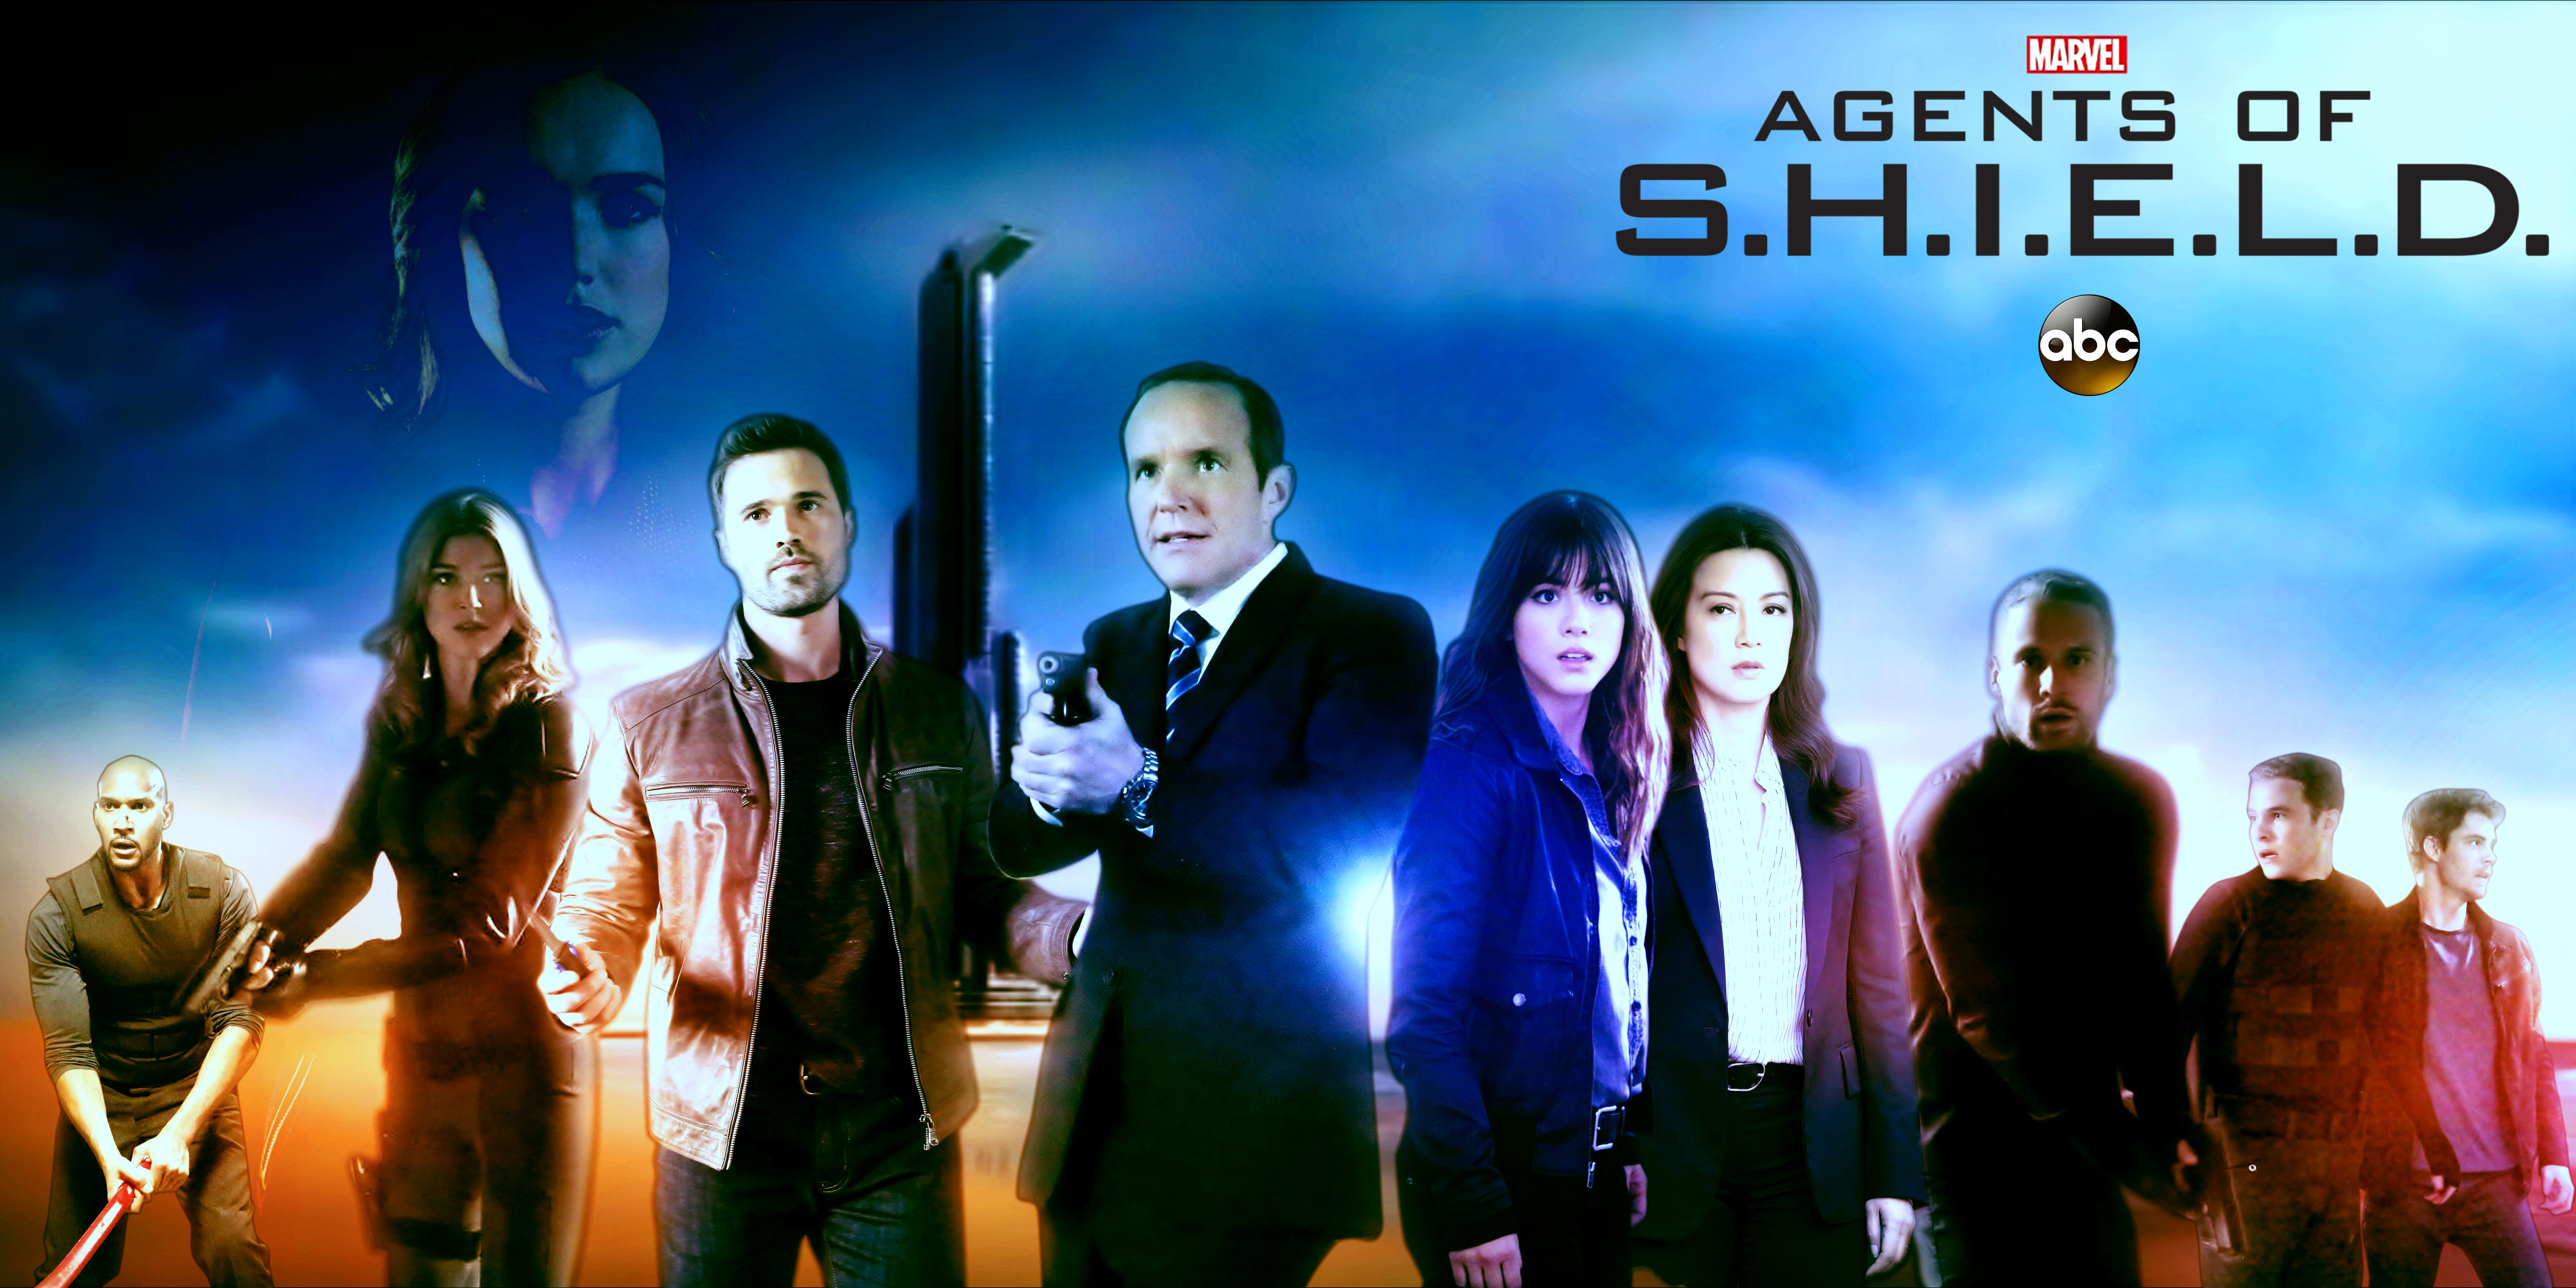 Agents Of Shield Source MARVEL S SHIELD 2013 Poster By MacSchaer On DeviantArt